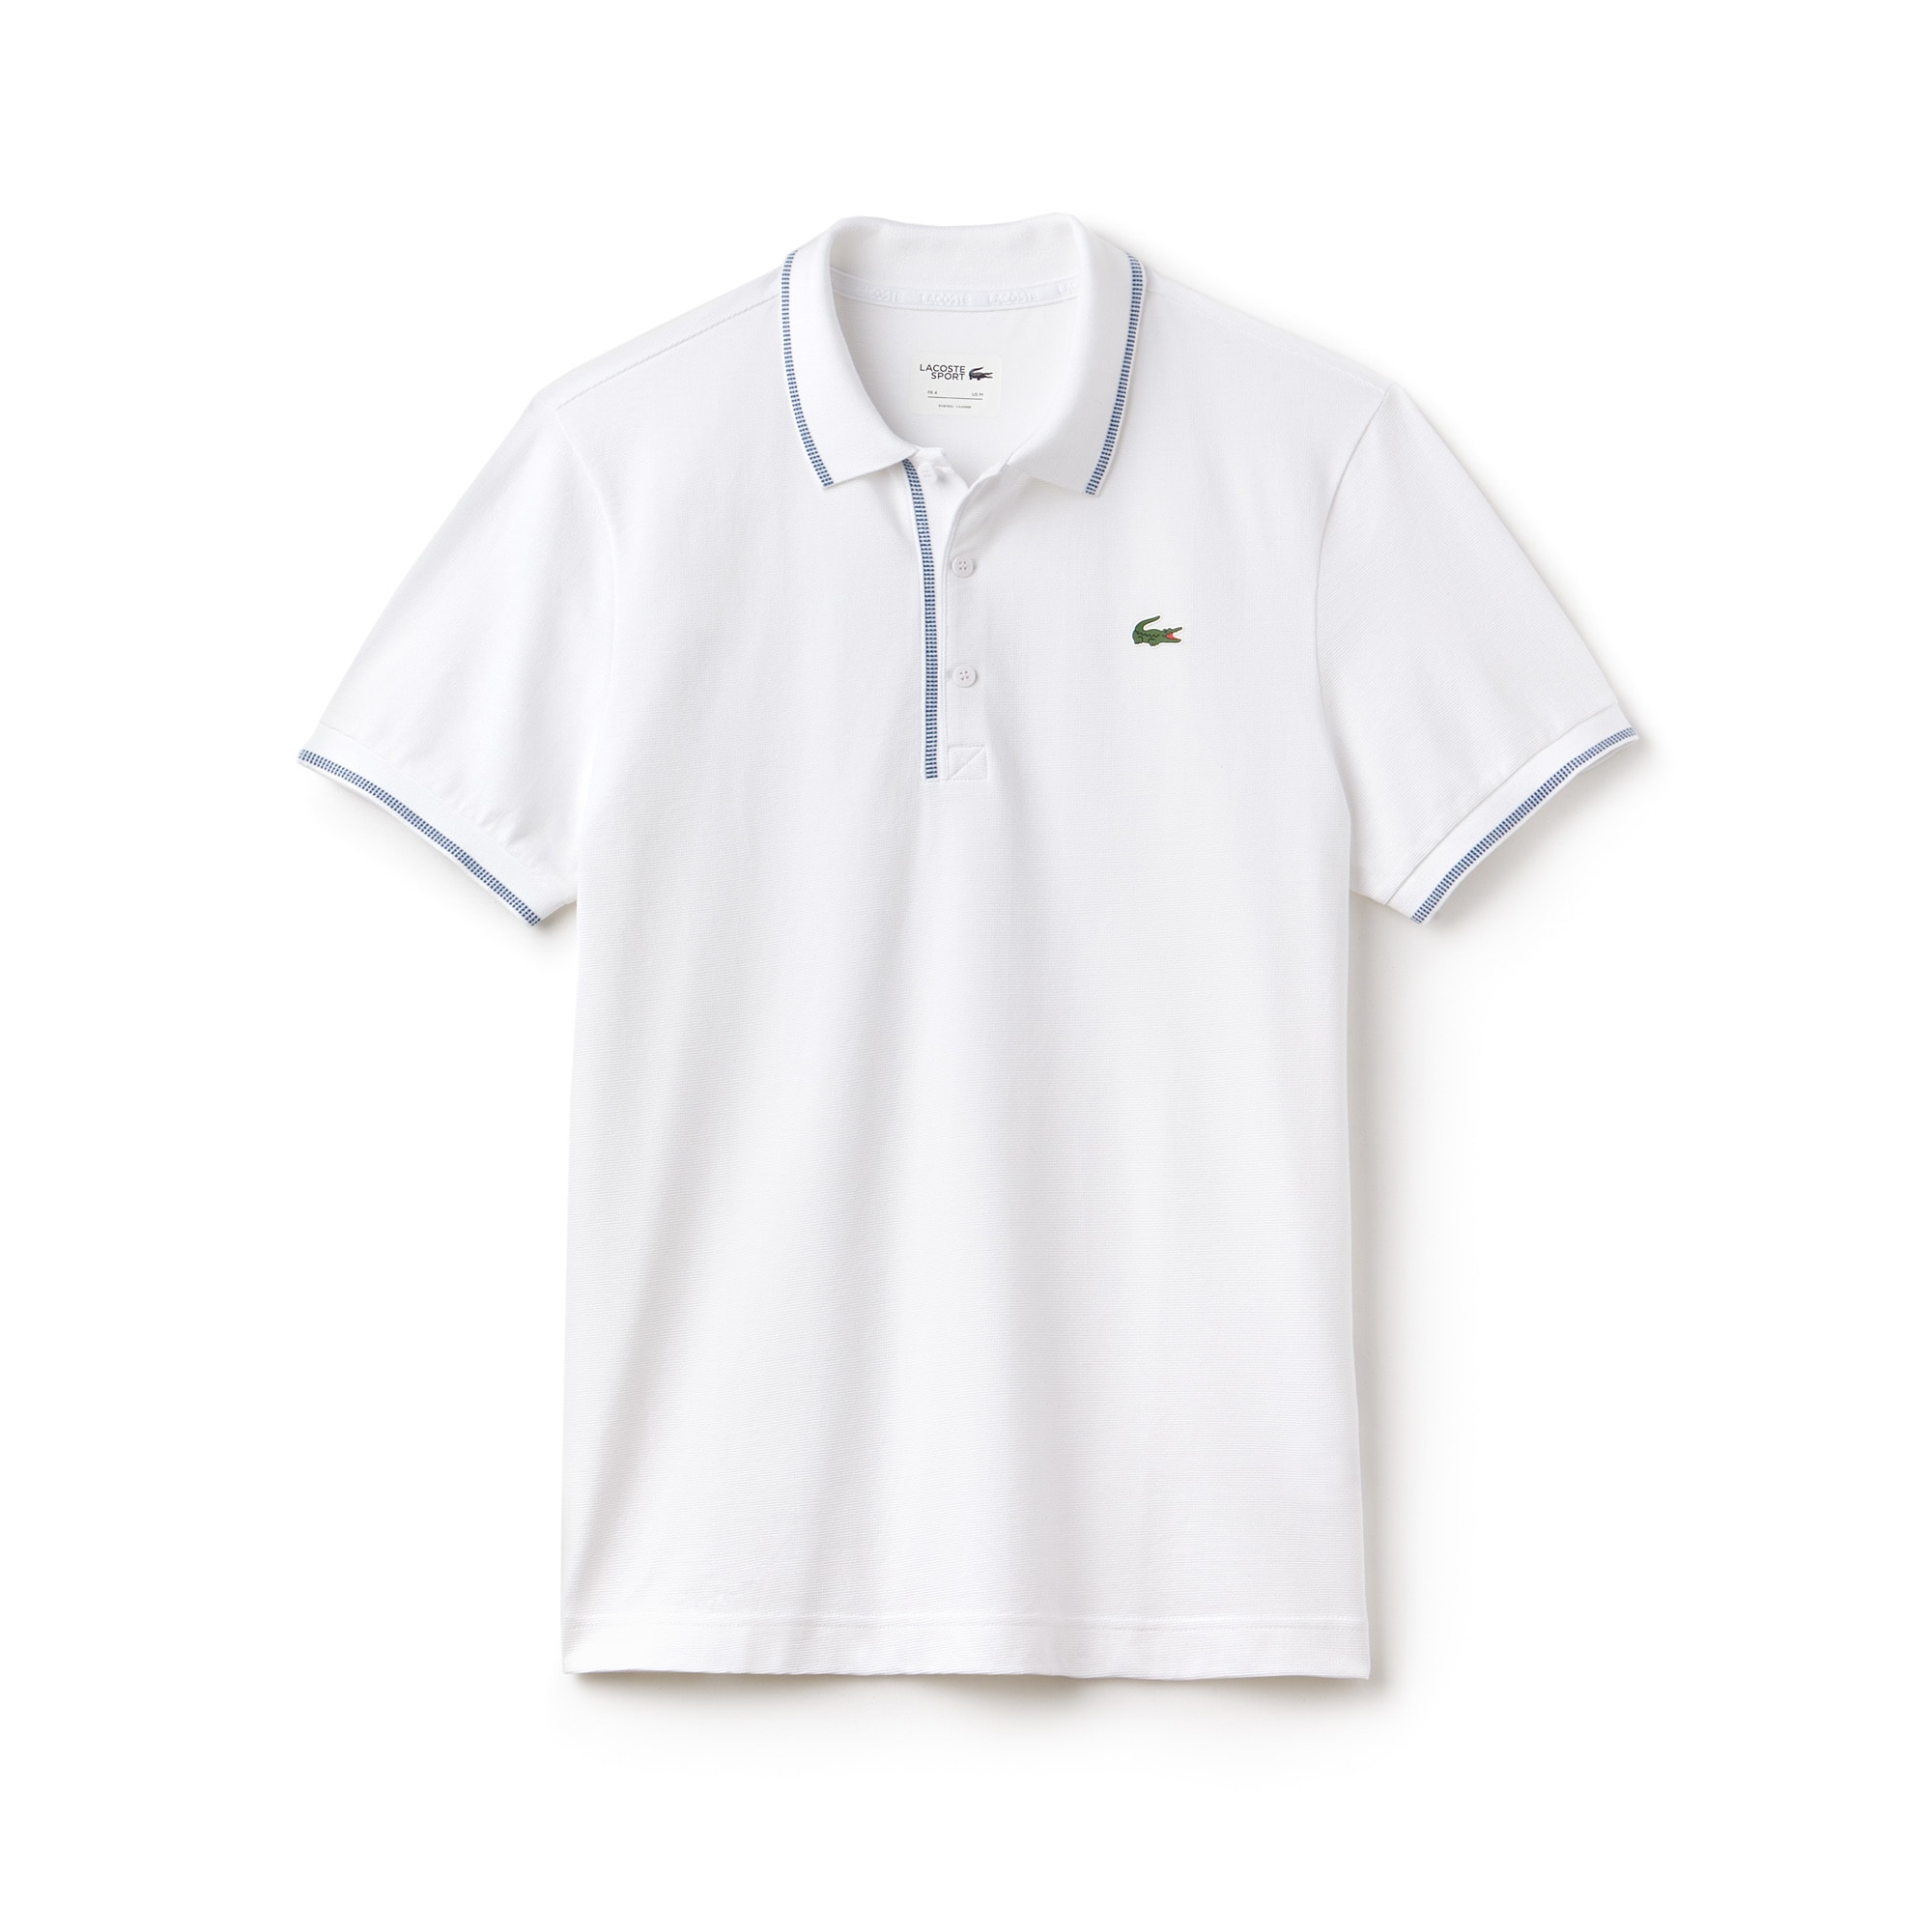 Men's Lacoste SPORT Piped Ultra-Light Cotton Golf Polo Shirt